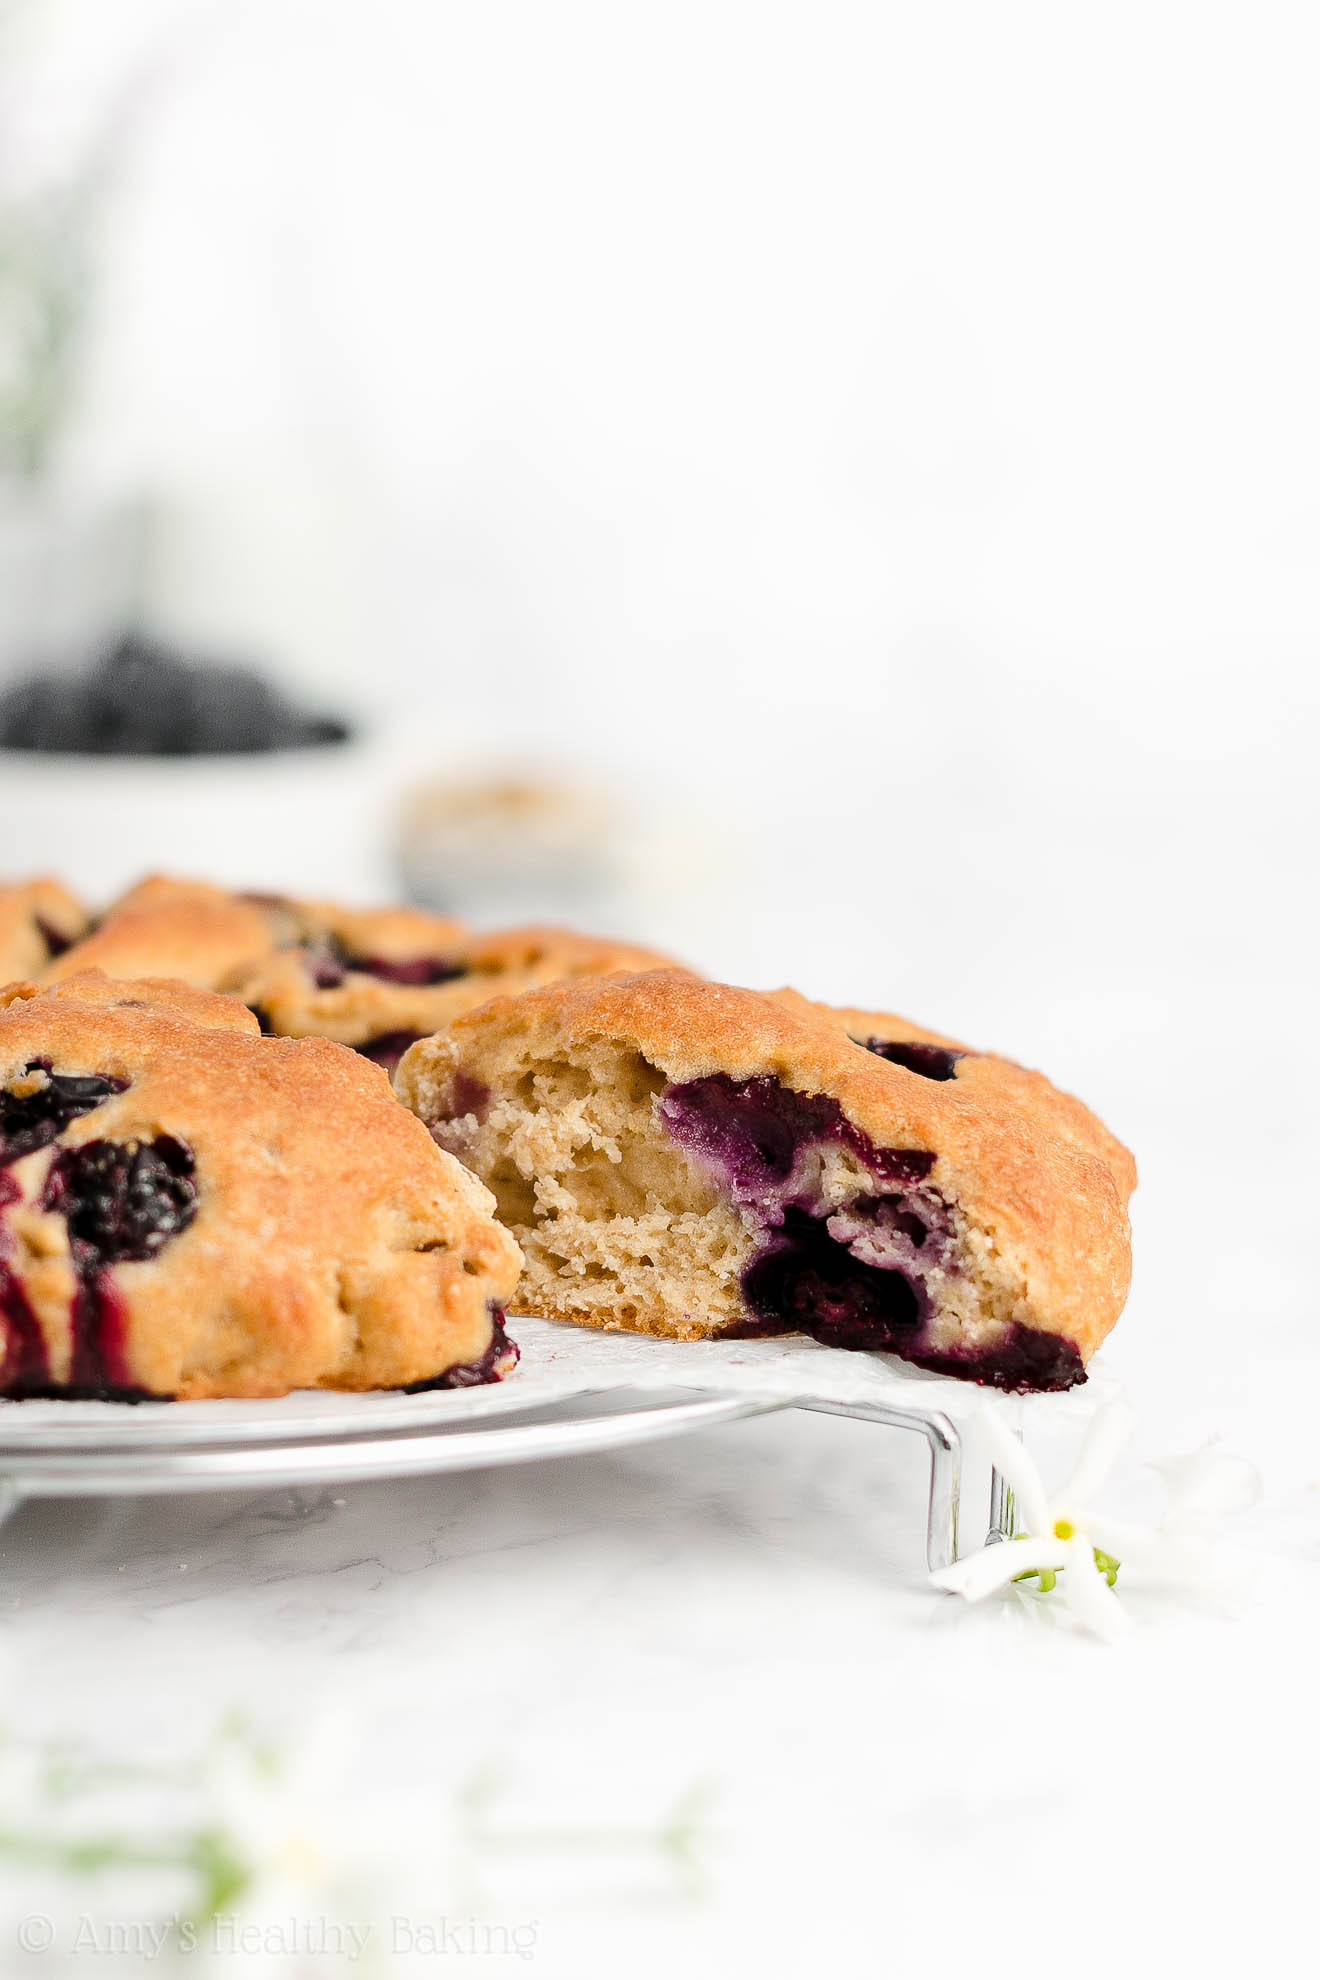 Easy Healthy Clean Eating Maple Syrup Greek Yogurt Blueberry Almond Scones